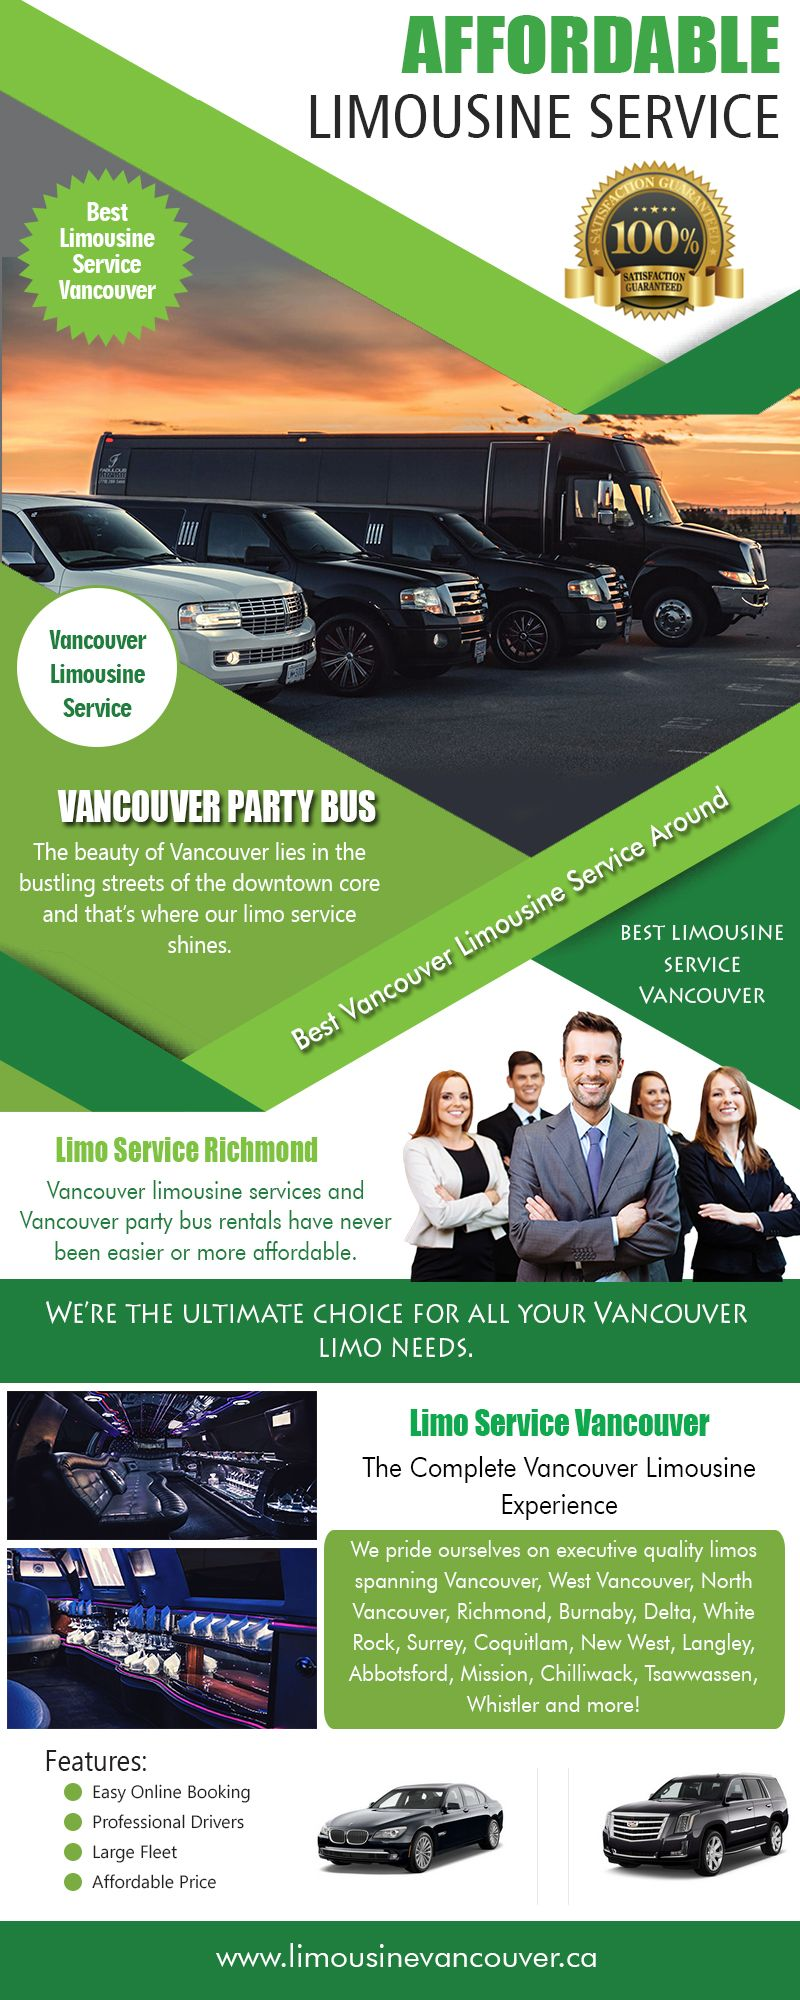 Limousine Vancouver for your luxury transportation need at